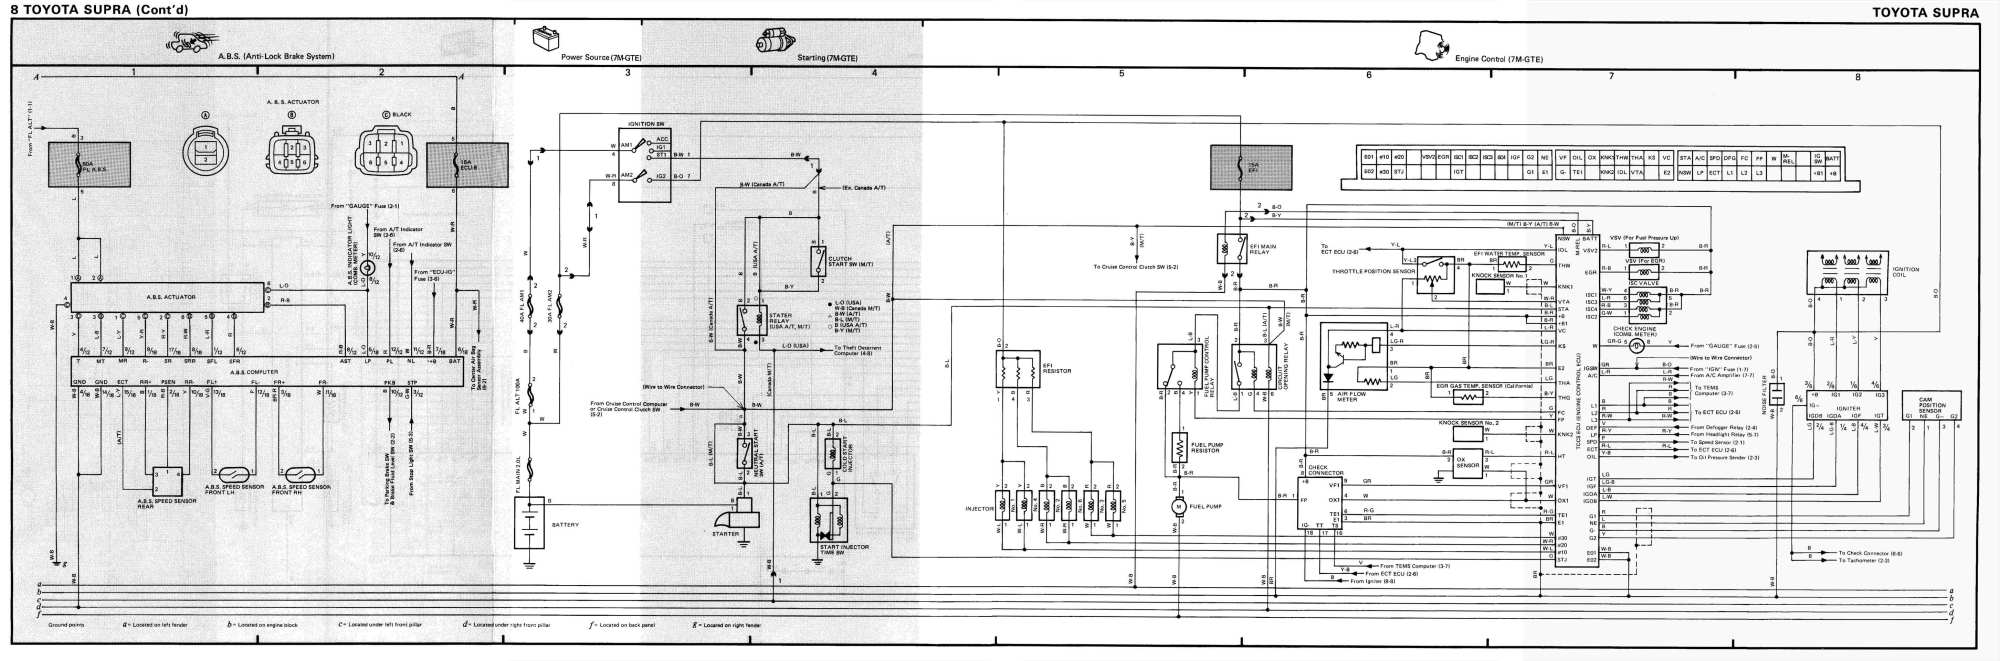 hight resolution of 1987 toyota supra wiring diagram wiring diagram for you 1987 toyota supra wiring diagram